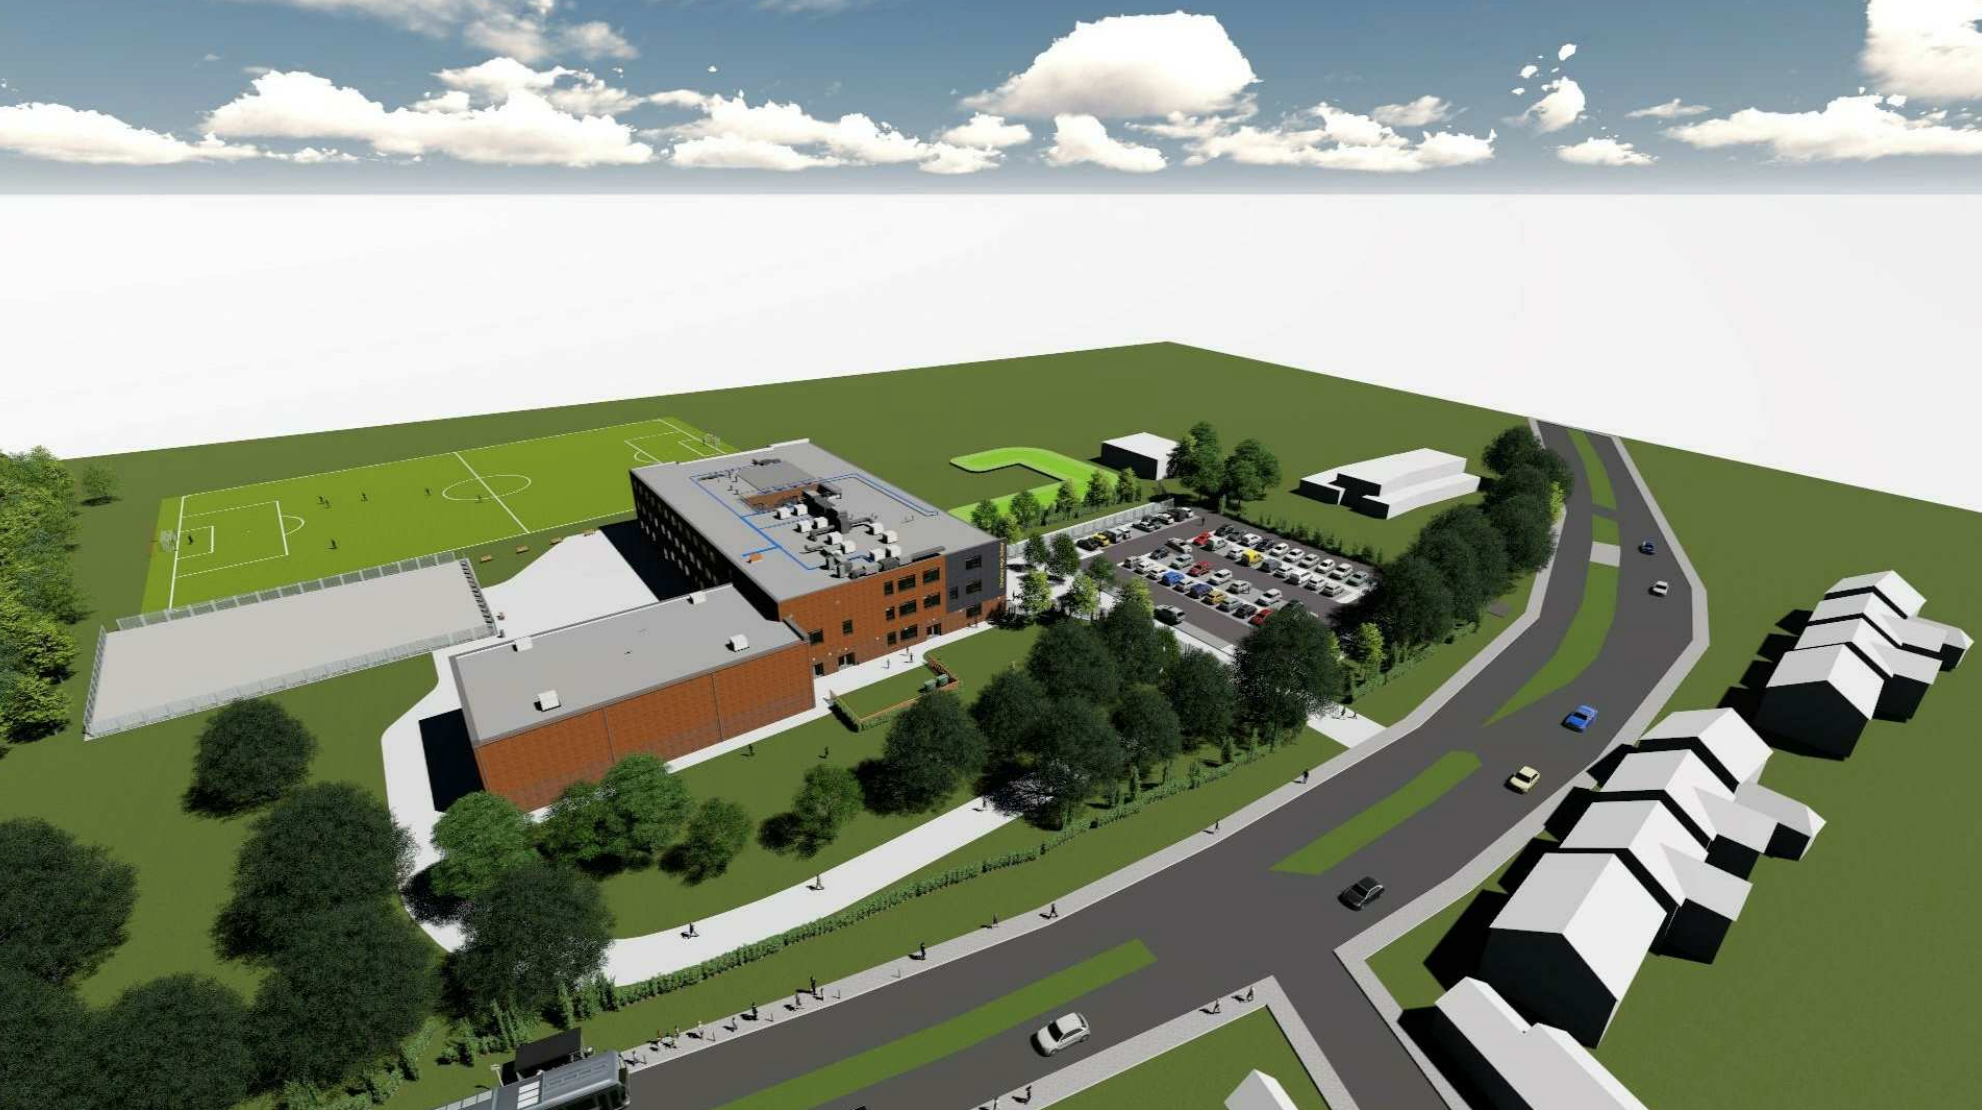 Artist's impression of how Chertsey High School will look when its new premises are ready